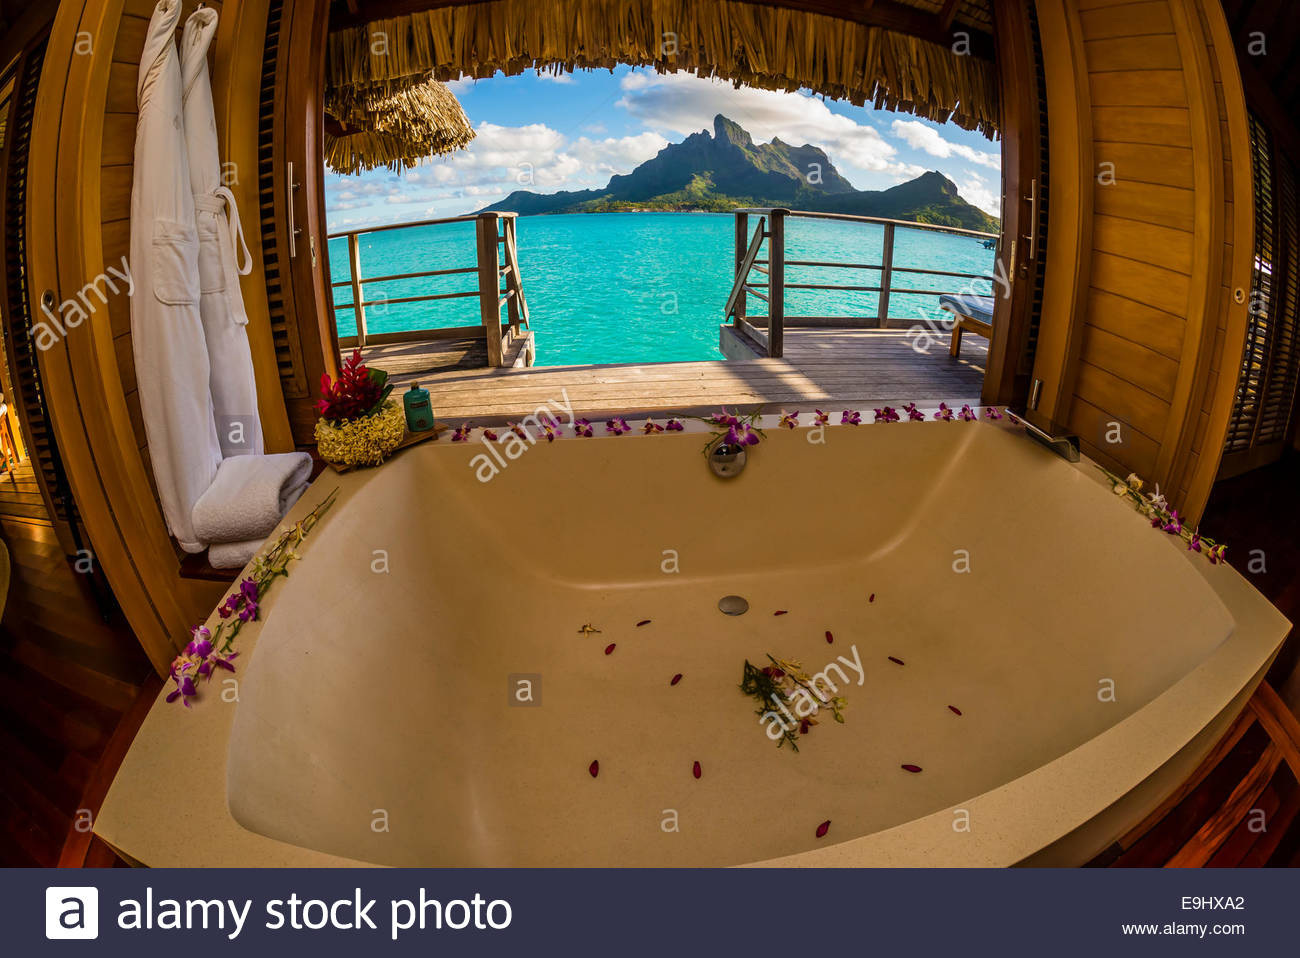 View From A Bathtub In An Overwater Bungalow Mt Otemanu In